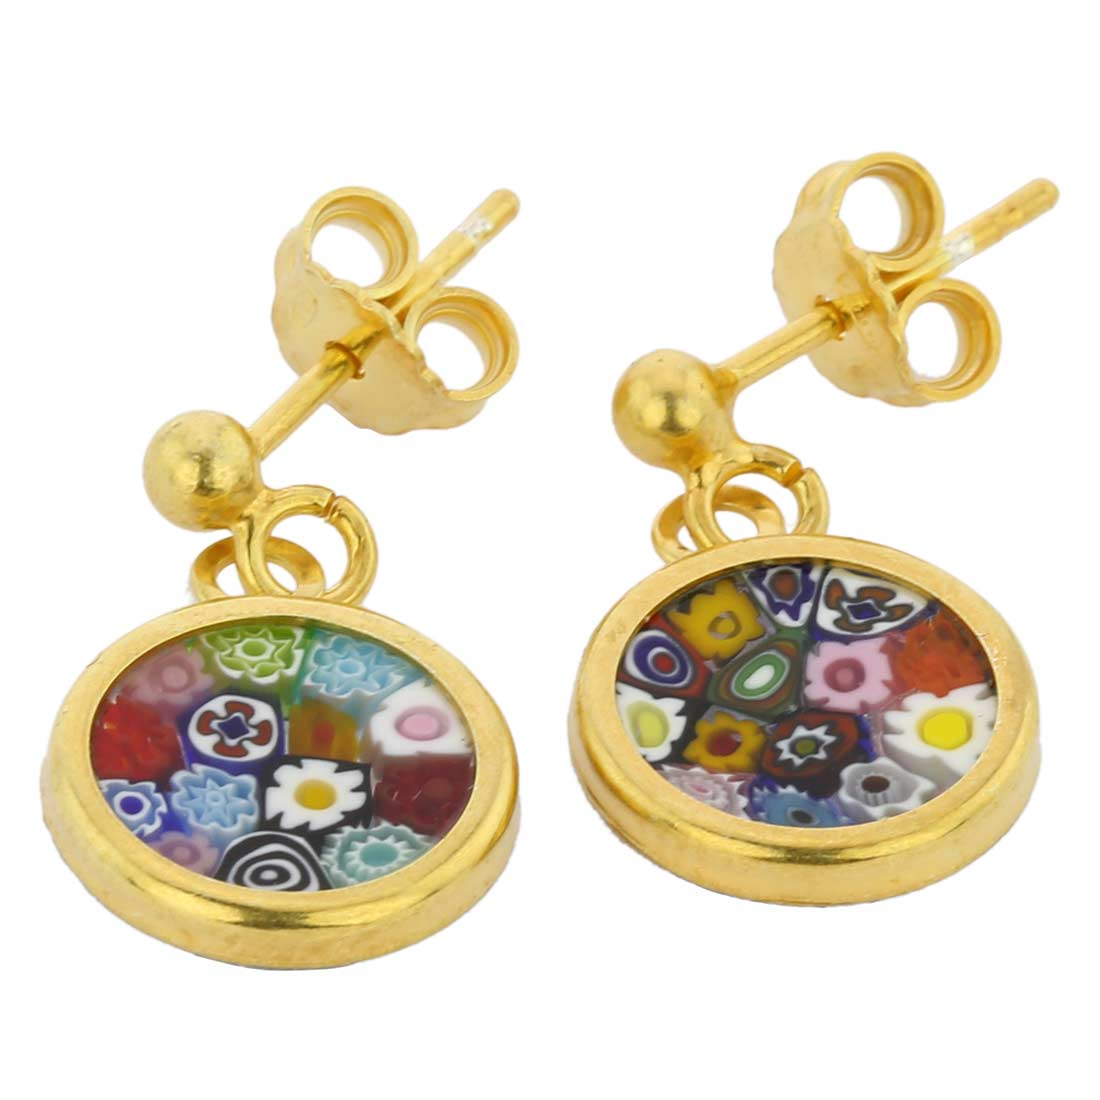 Millefiori earrings in gold-plated frame